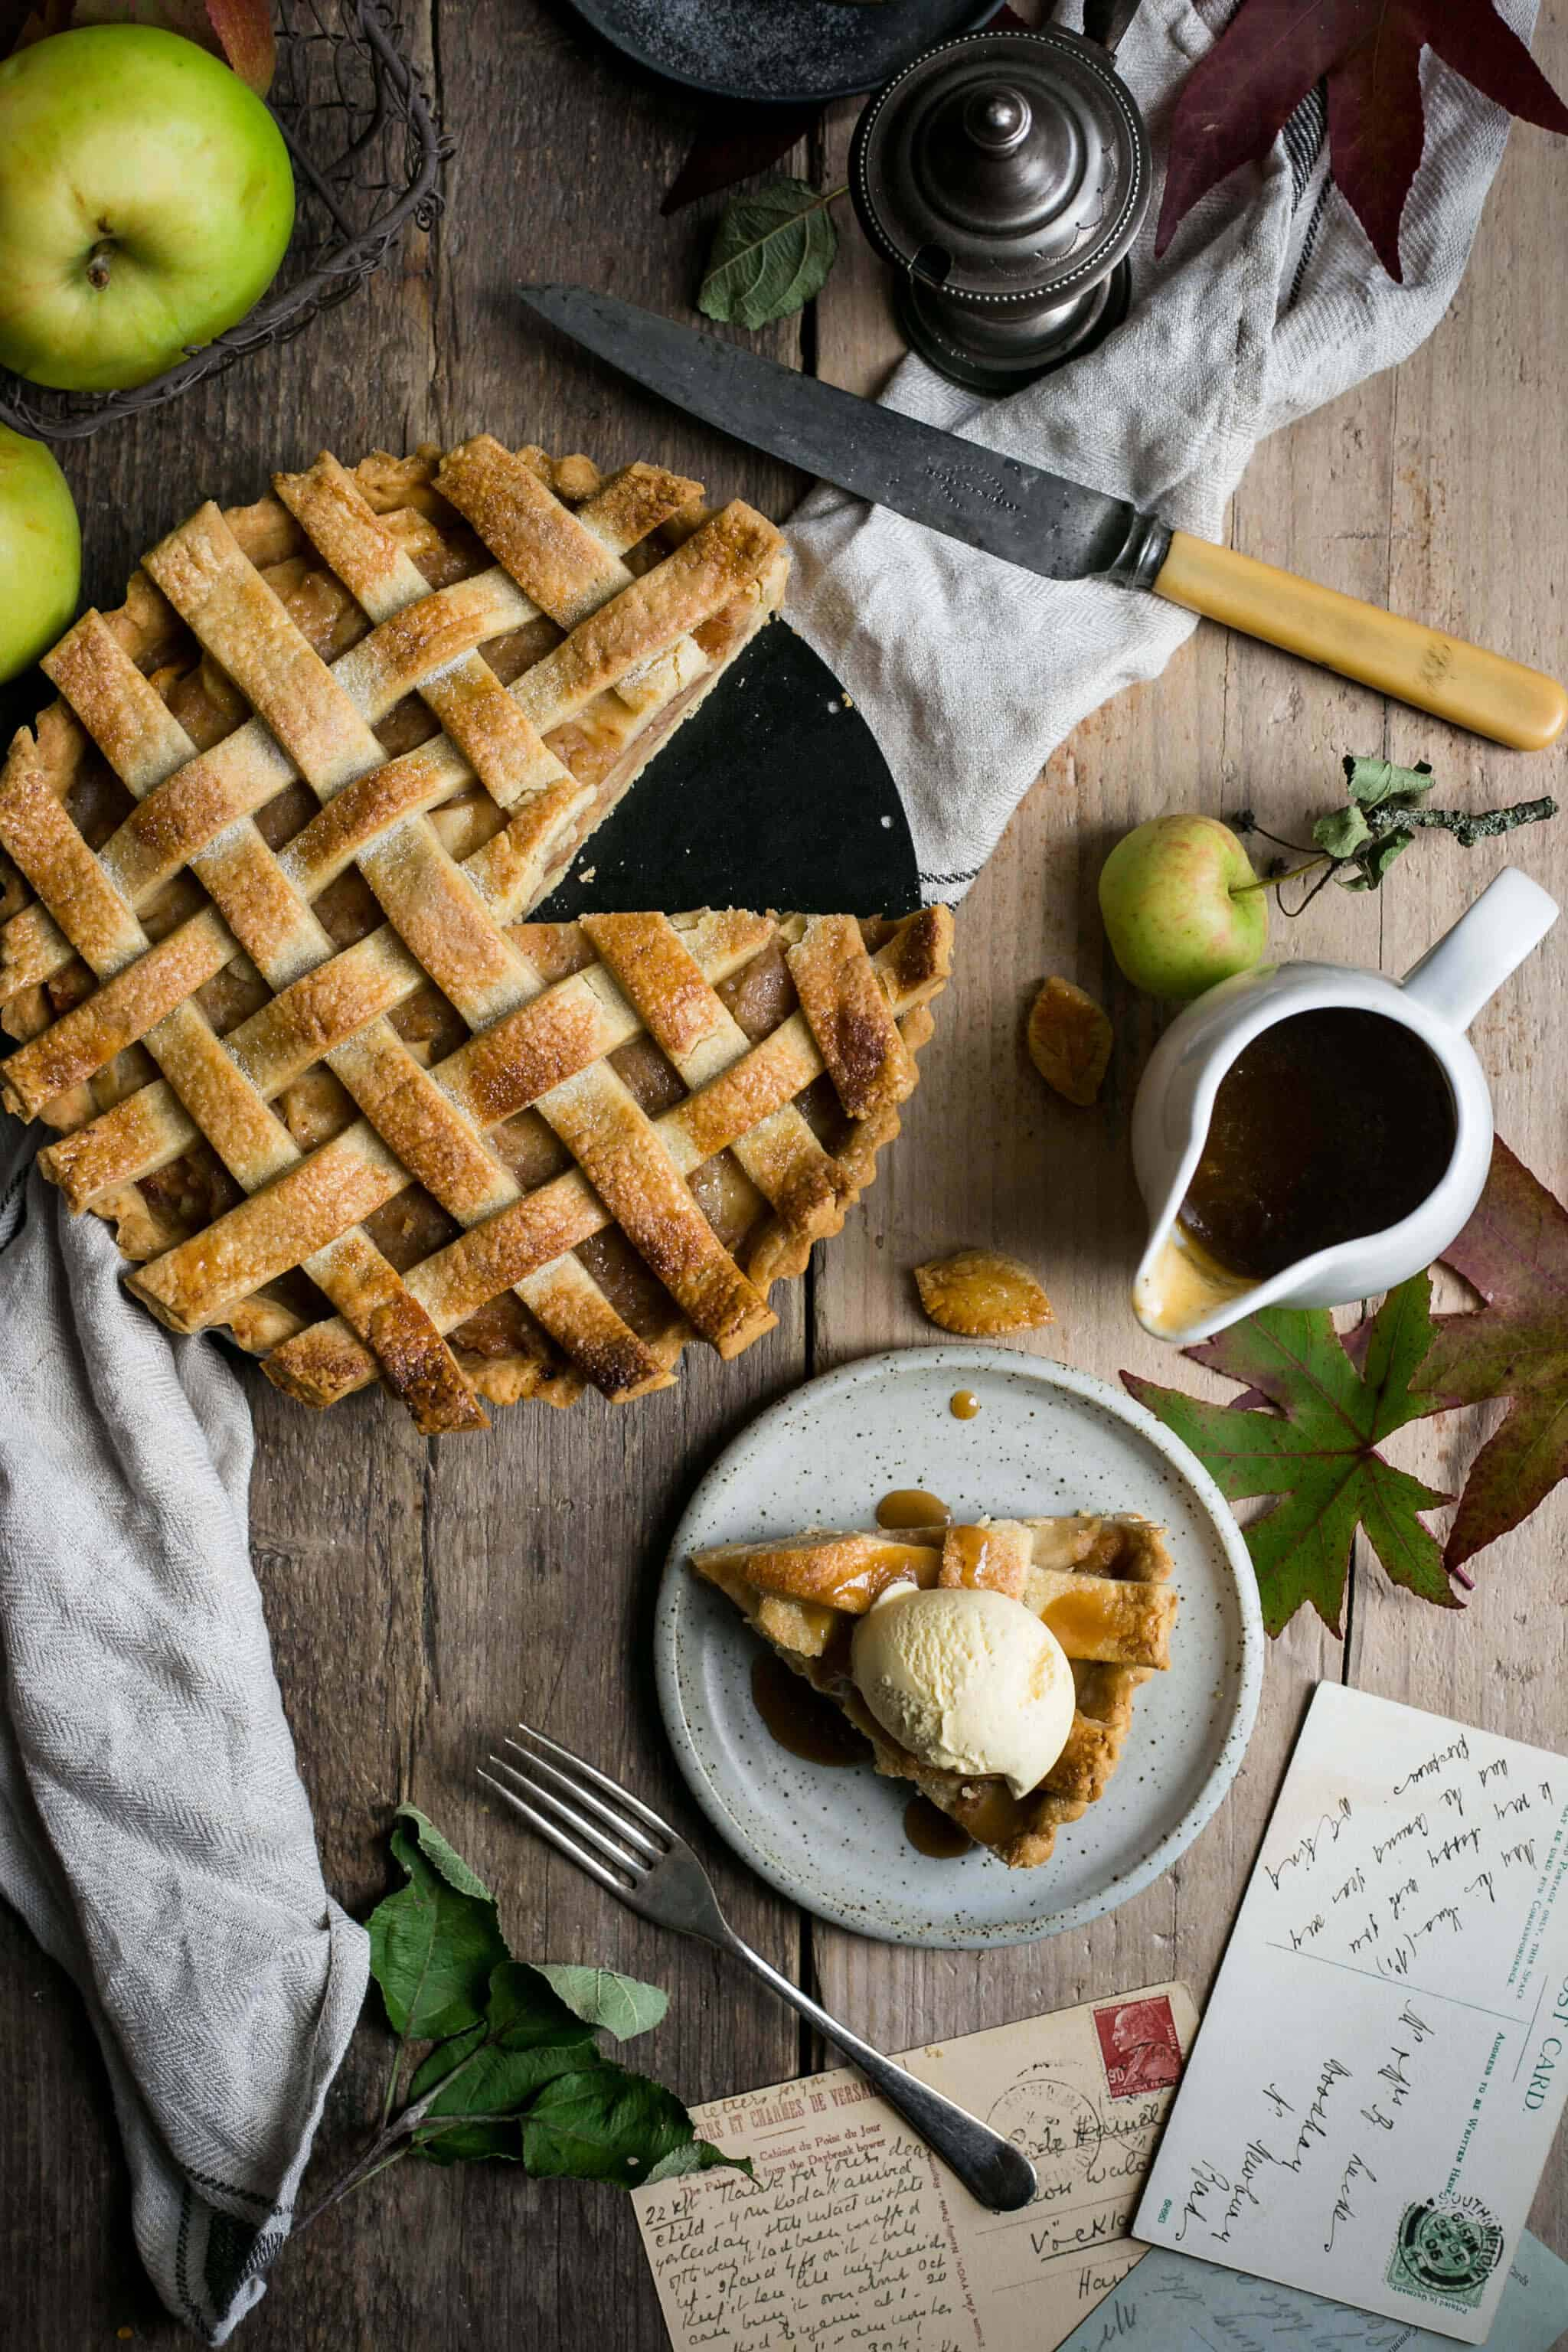 Classic apple pie with caramel sauce. Easy recipe for a perfect seasonal pie #apple pie #vegan | via @annabanana.co